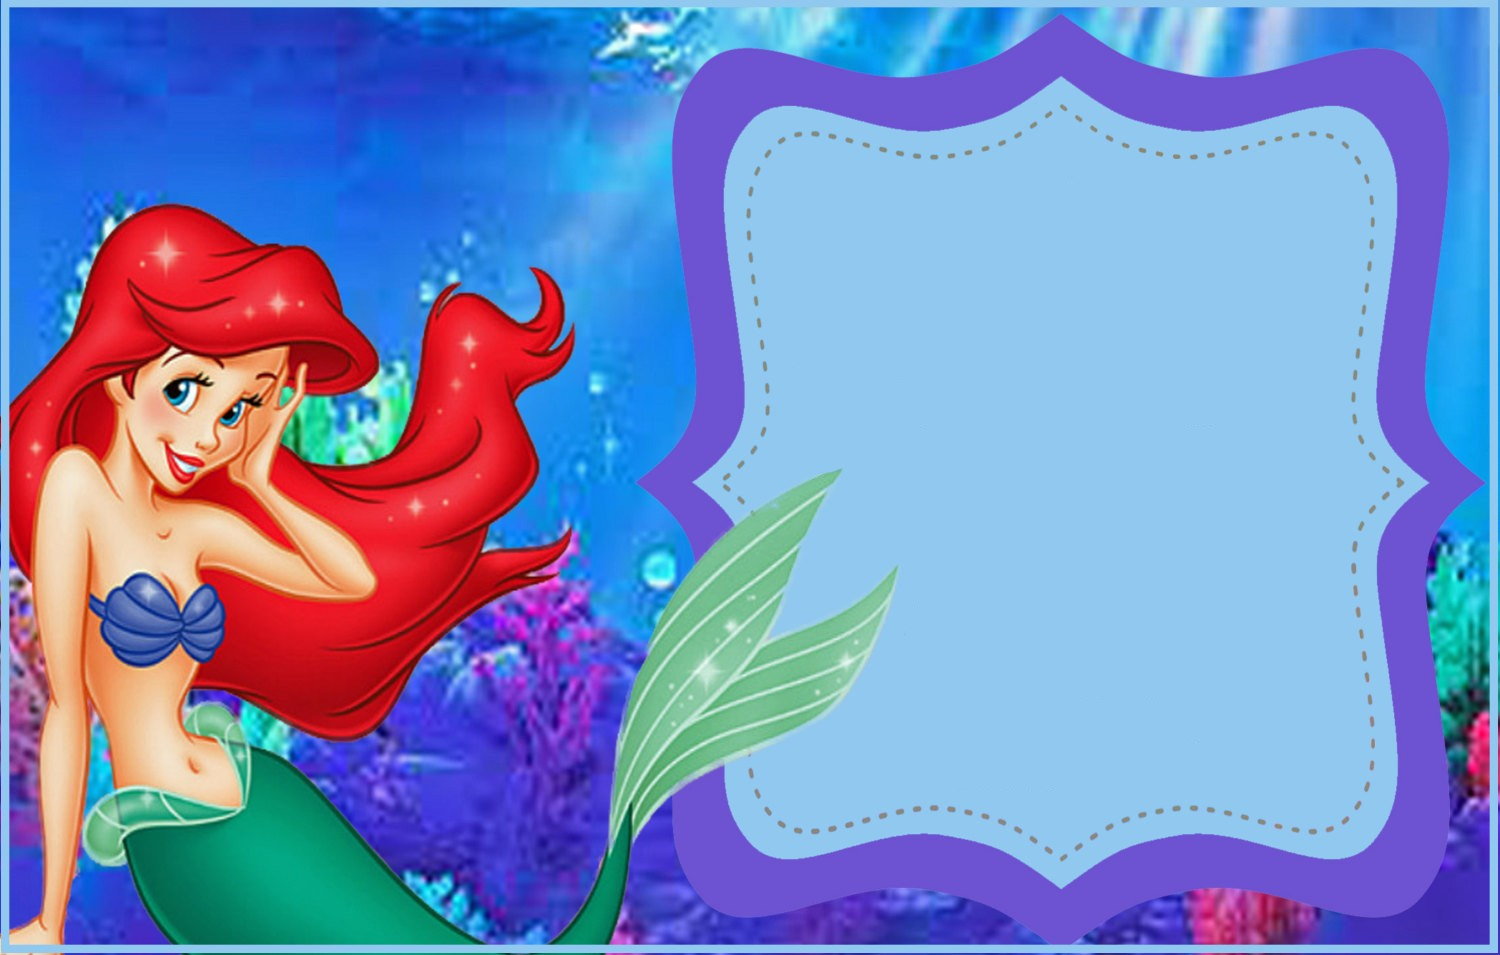 little mermaid invitation template mermaid free printable invitation templates 23454 | Free Printable Little Mermaid Invitation Template